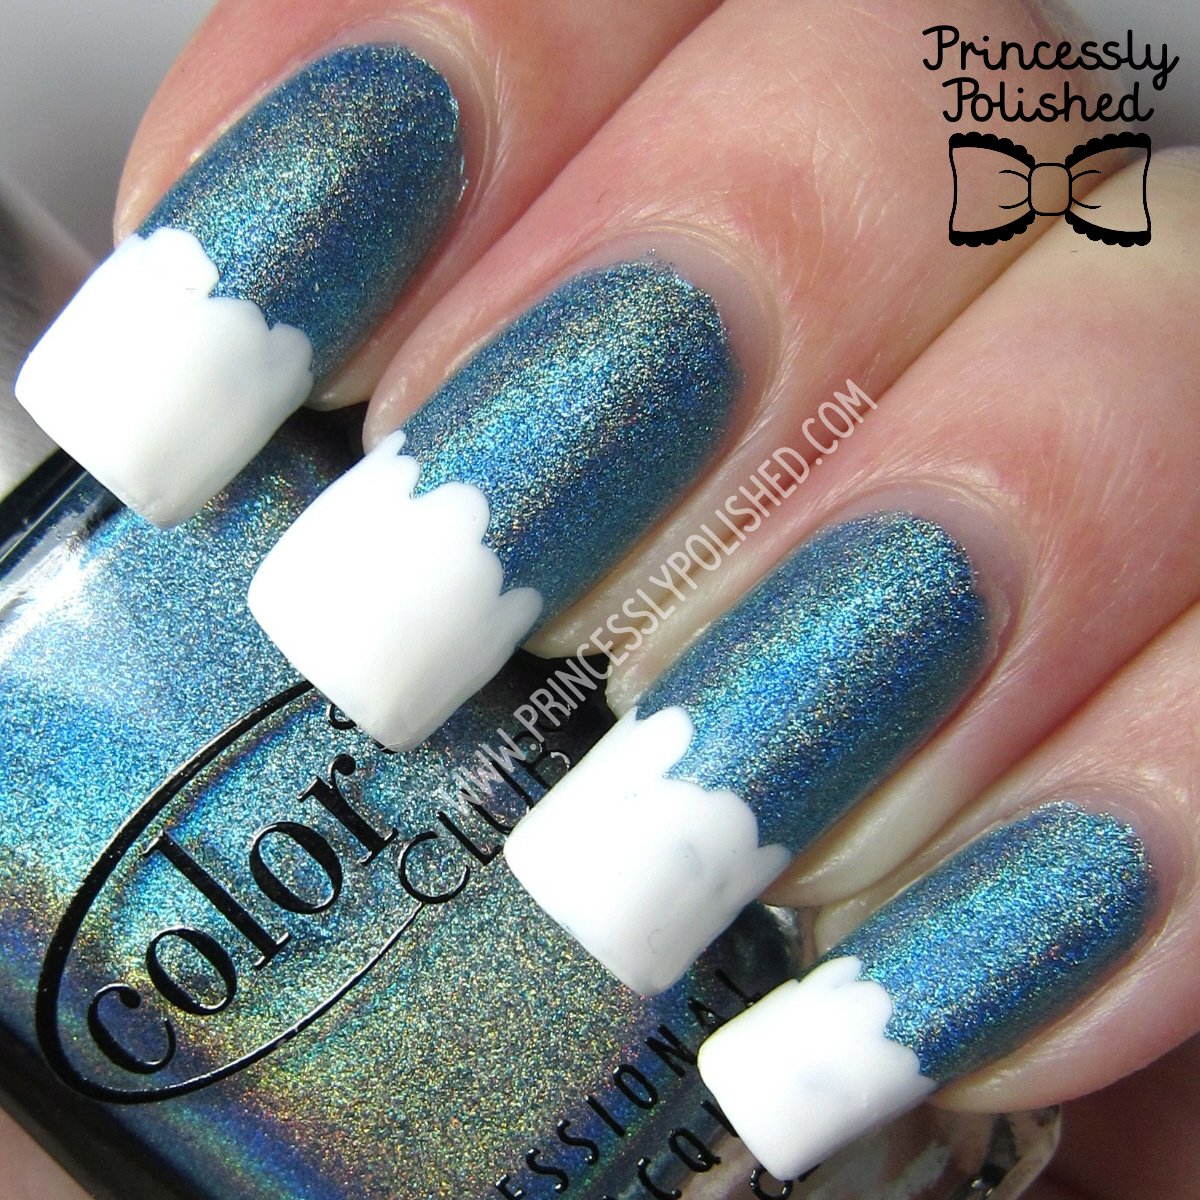 Princessly Polished: Color Club: Over the Moon - Cloud